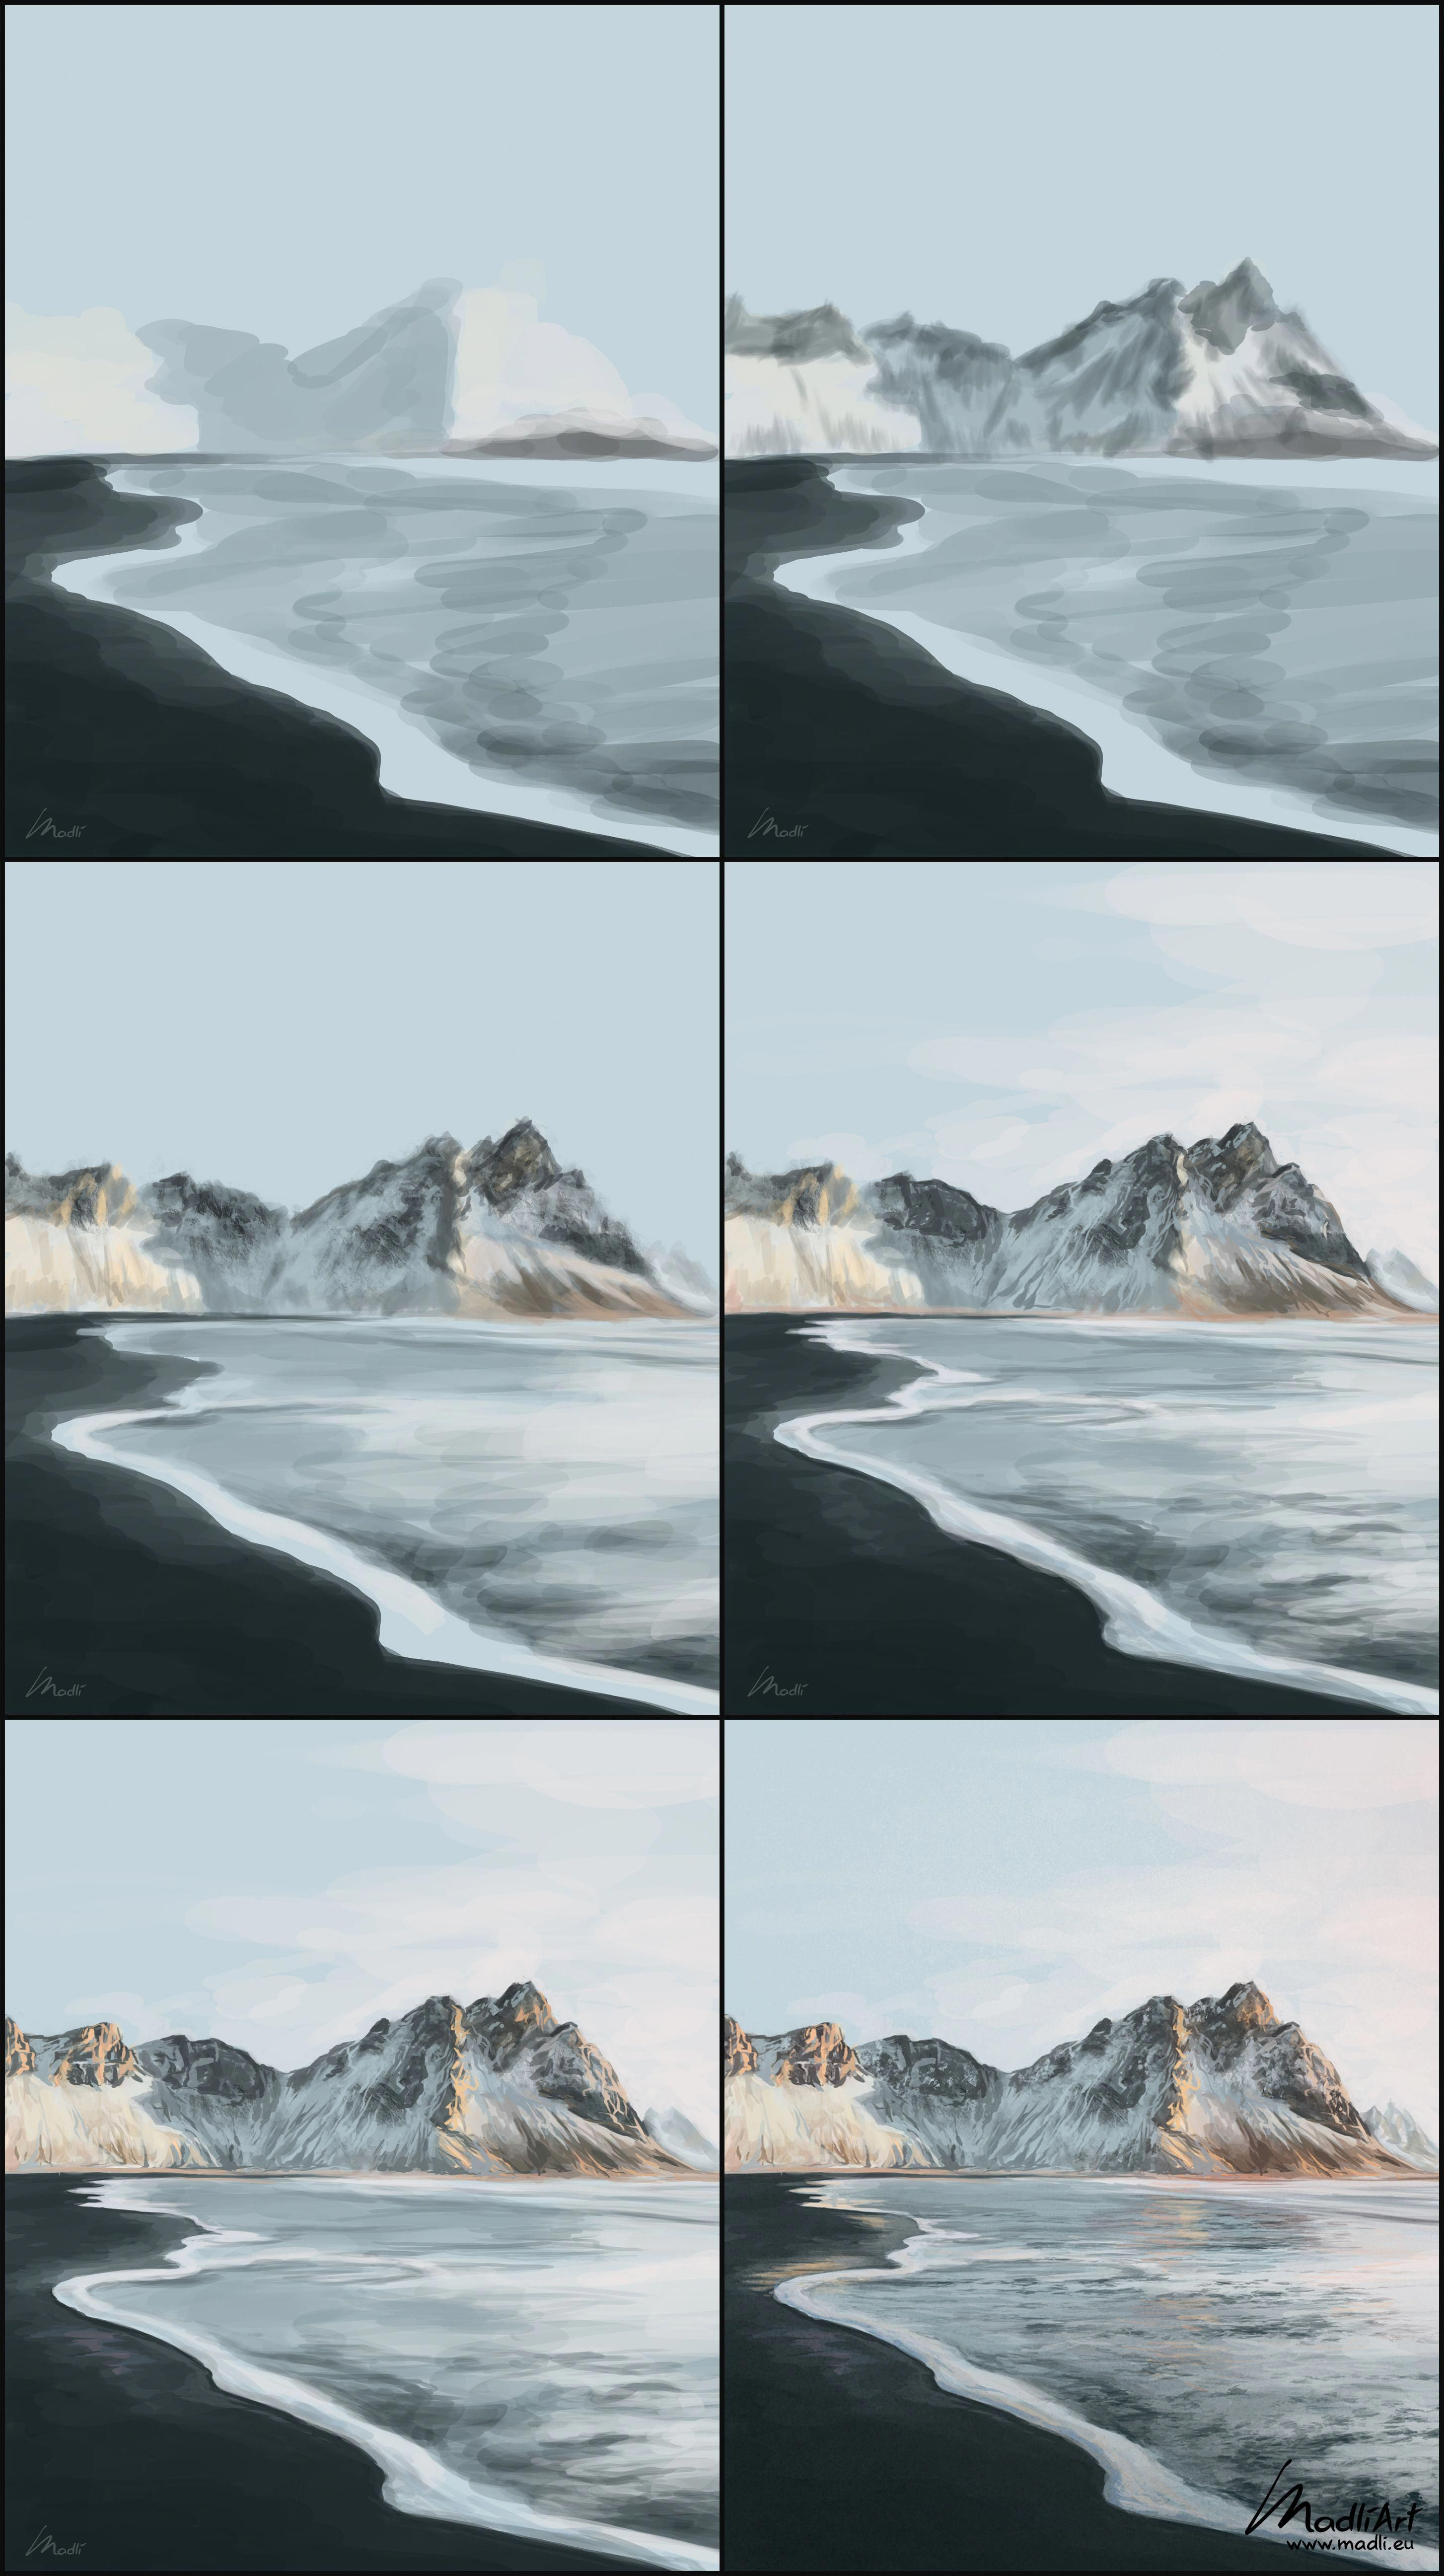 How To Paint Sandy Black Beach Scene Digital Painting Of Iceland Volcanic Beach Wit Concept Art Drawing Landscape Painting Tutorial Digital Painting Photoshop